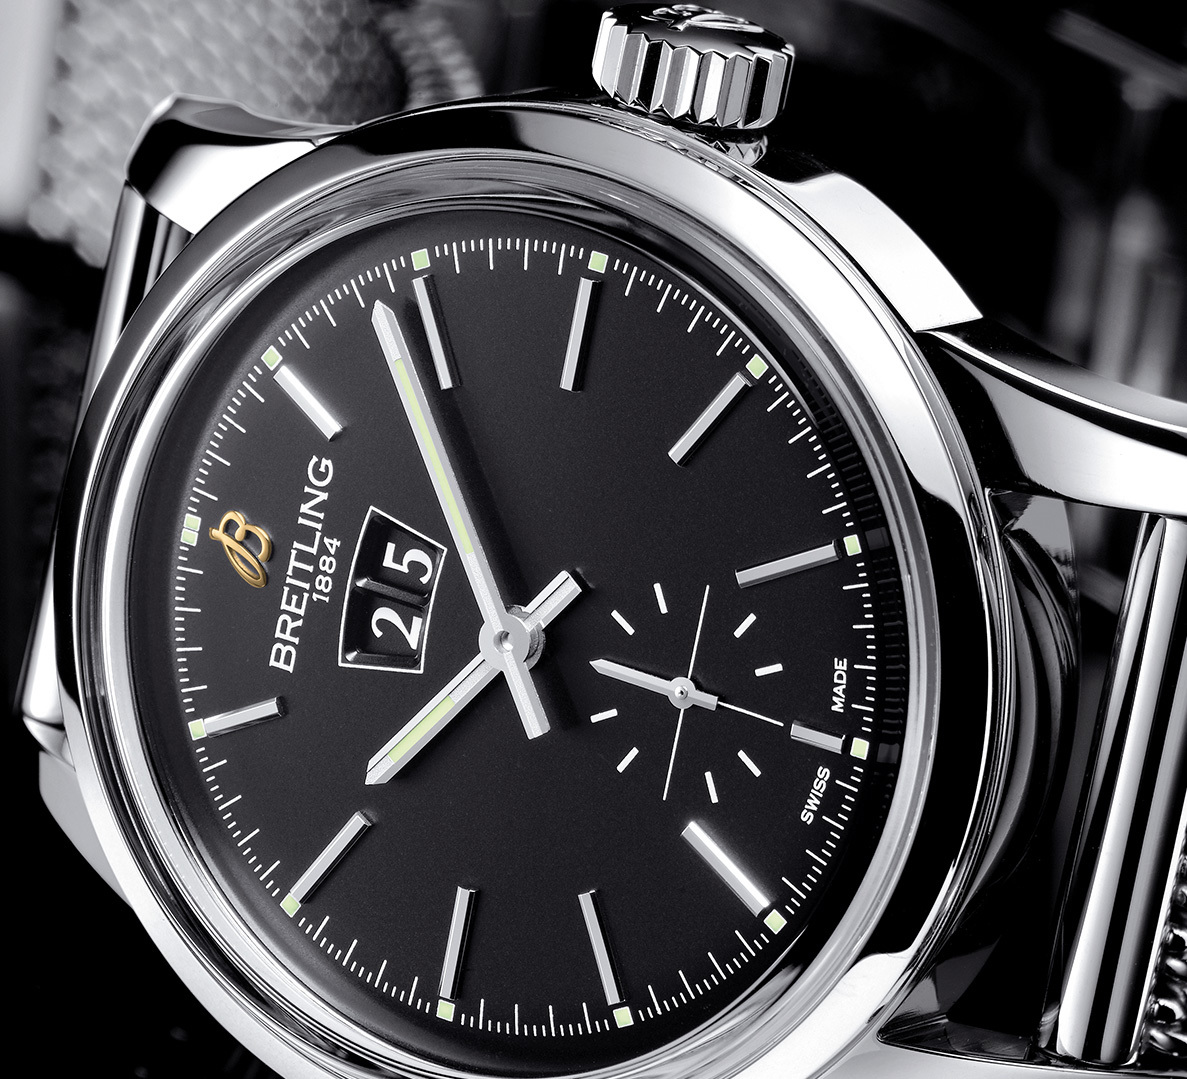 Breitling Transocean 38 replica watch